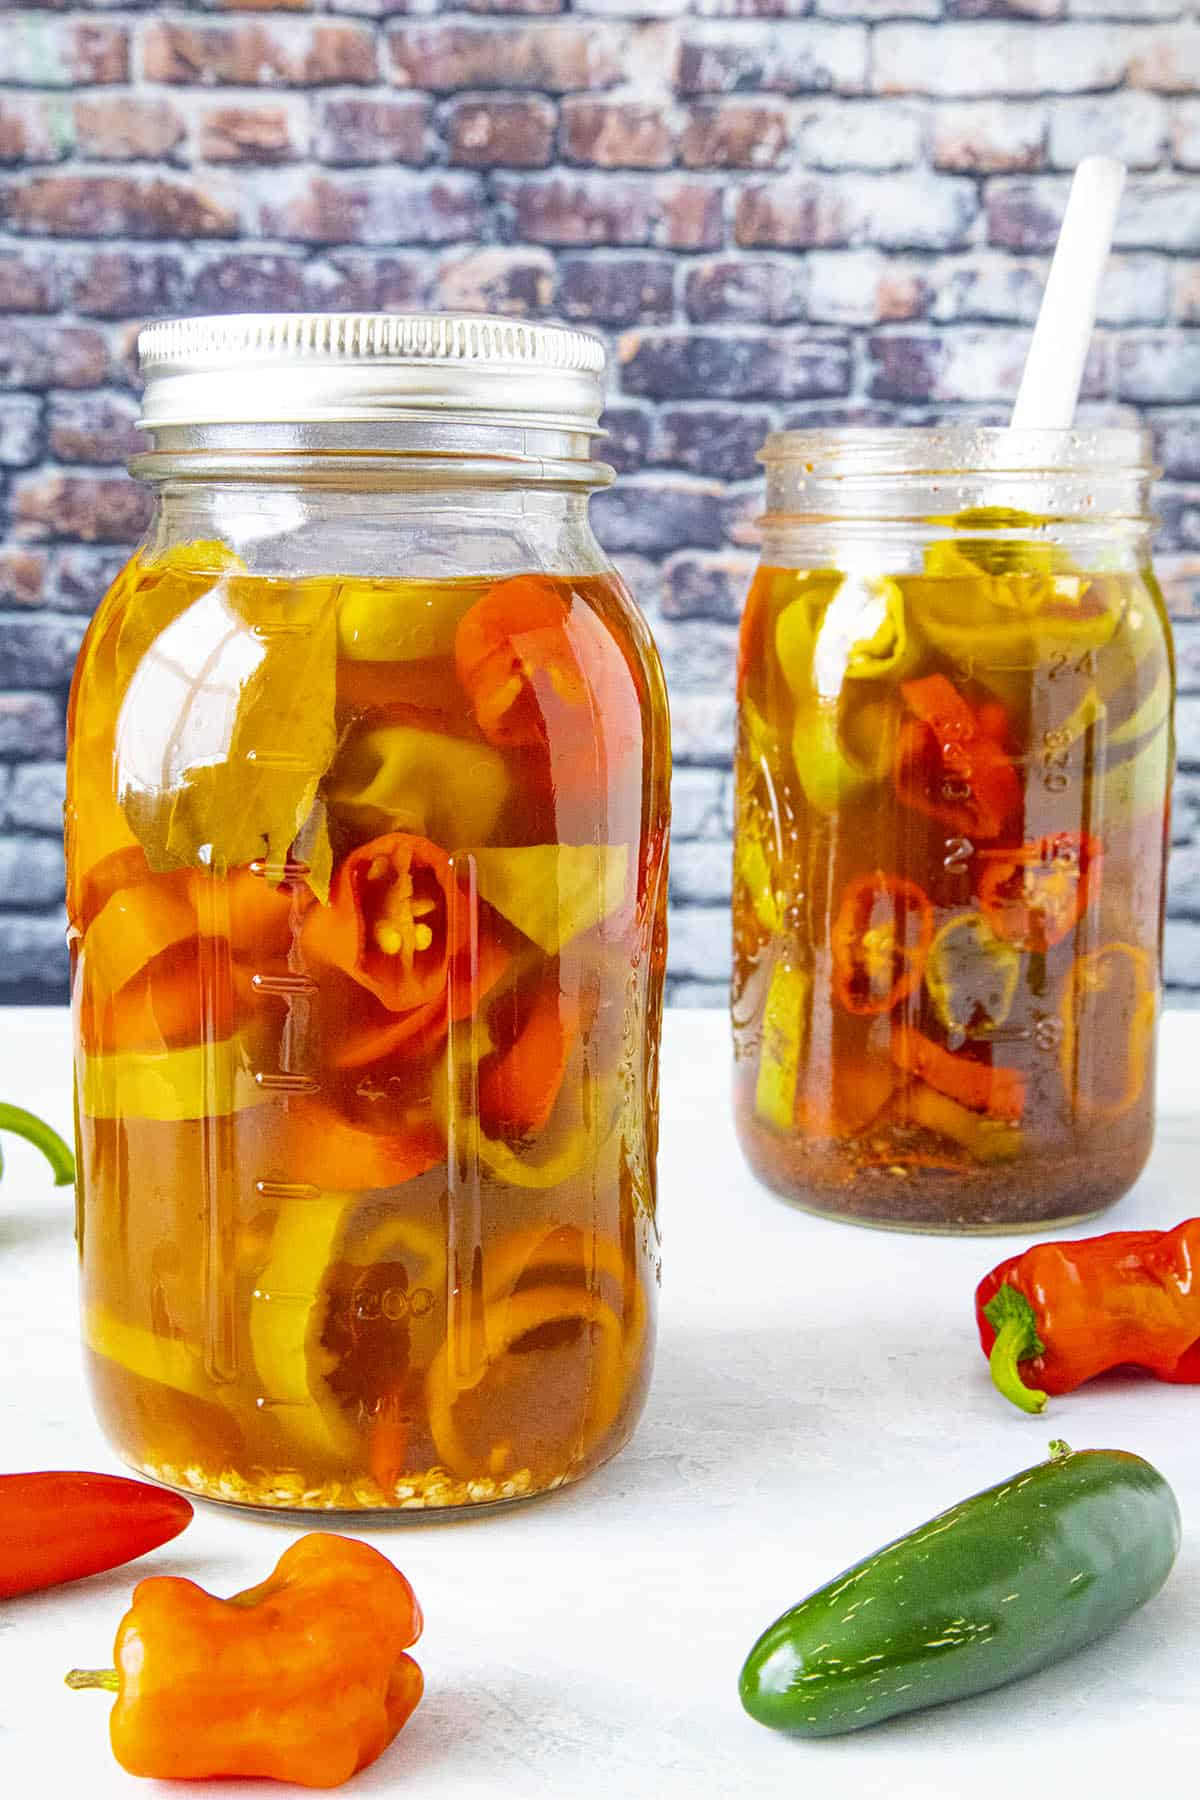 Pickled peppers in 2 jars